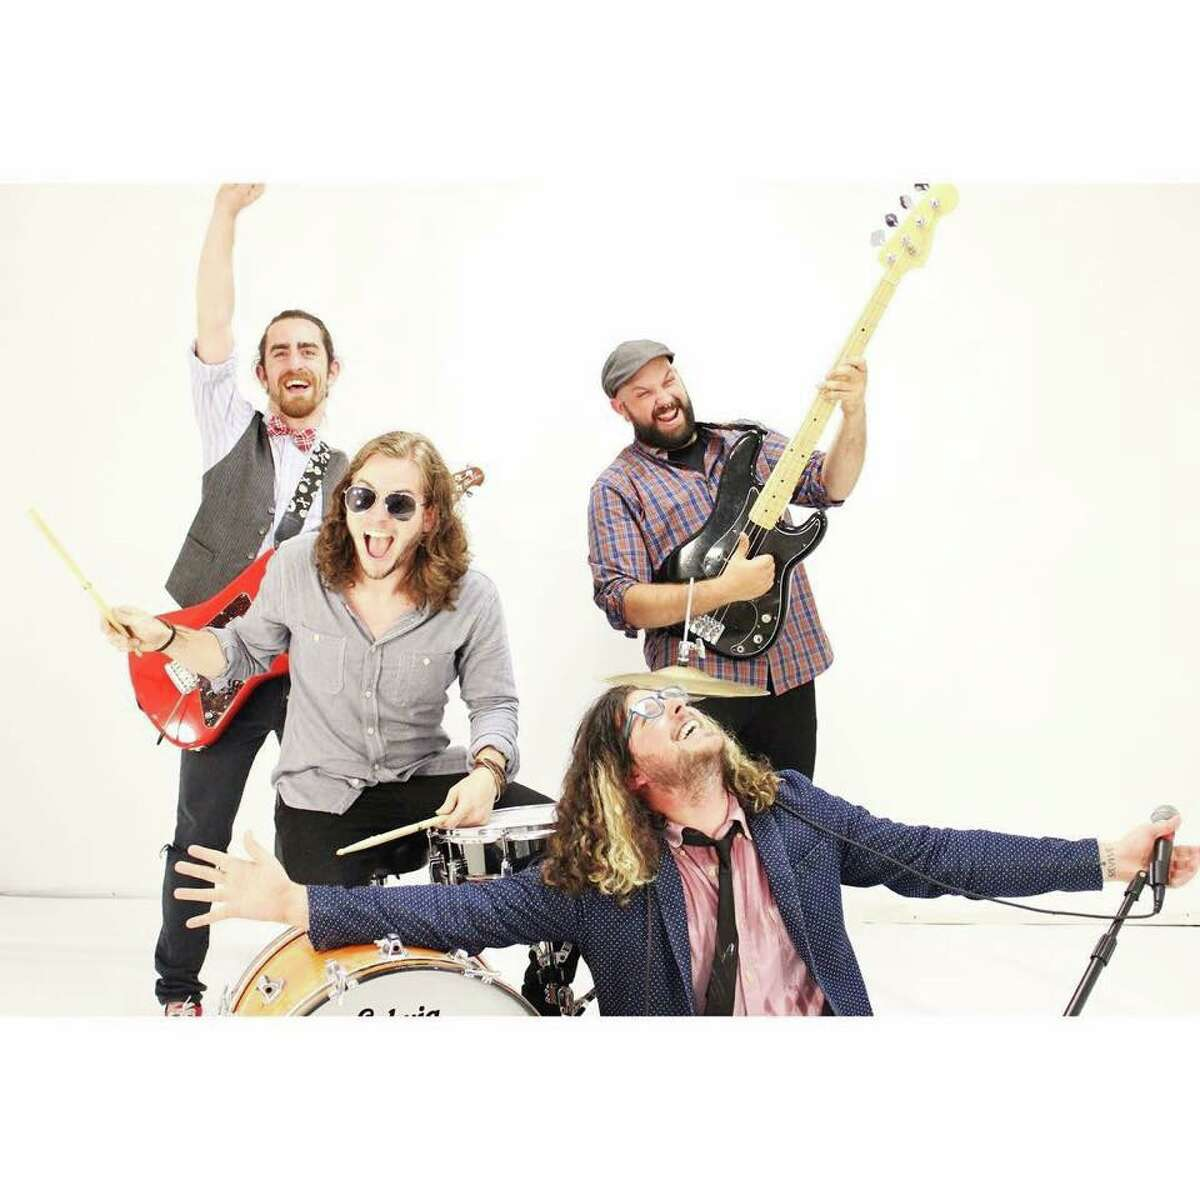 Enjoy local bands at Move Music Festival. When: April 22nd-24th. Where: Multiple venues in Albany. Click here for more information.